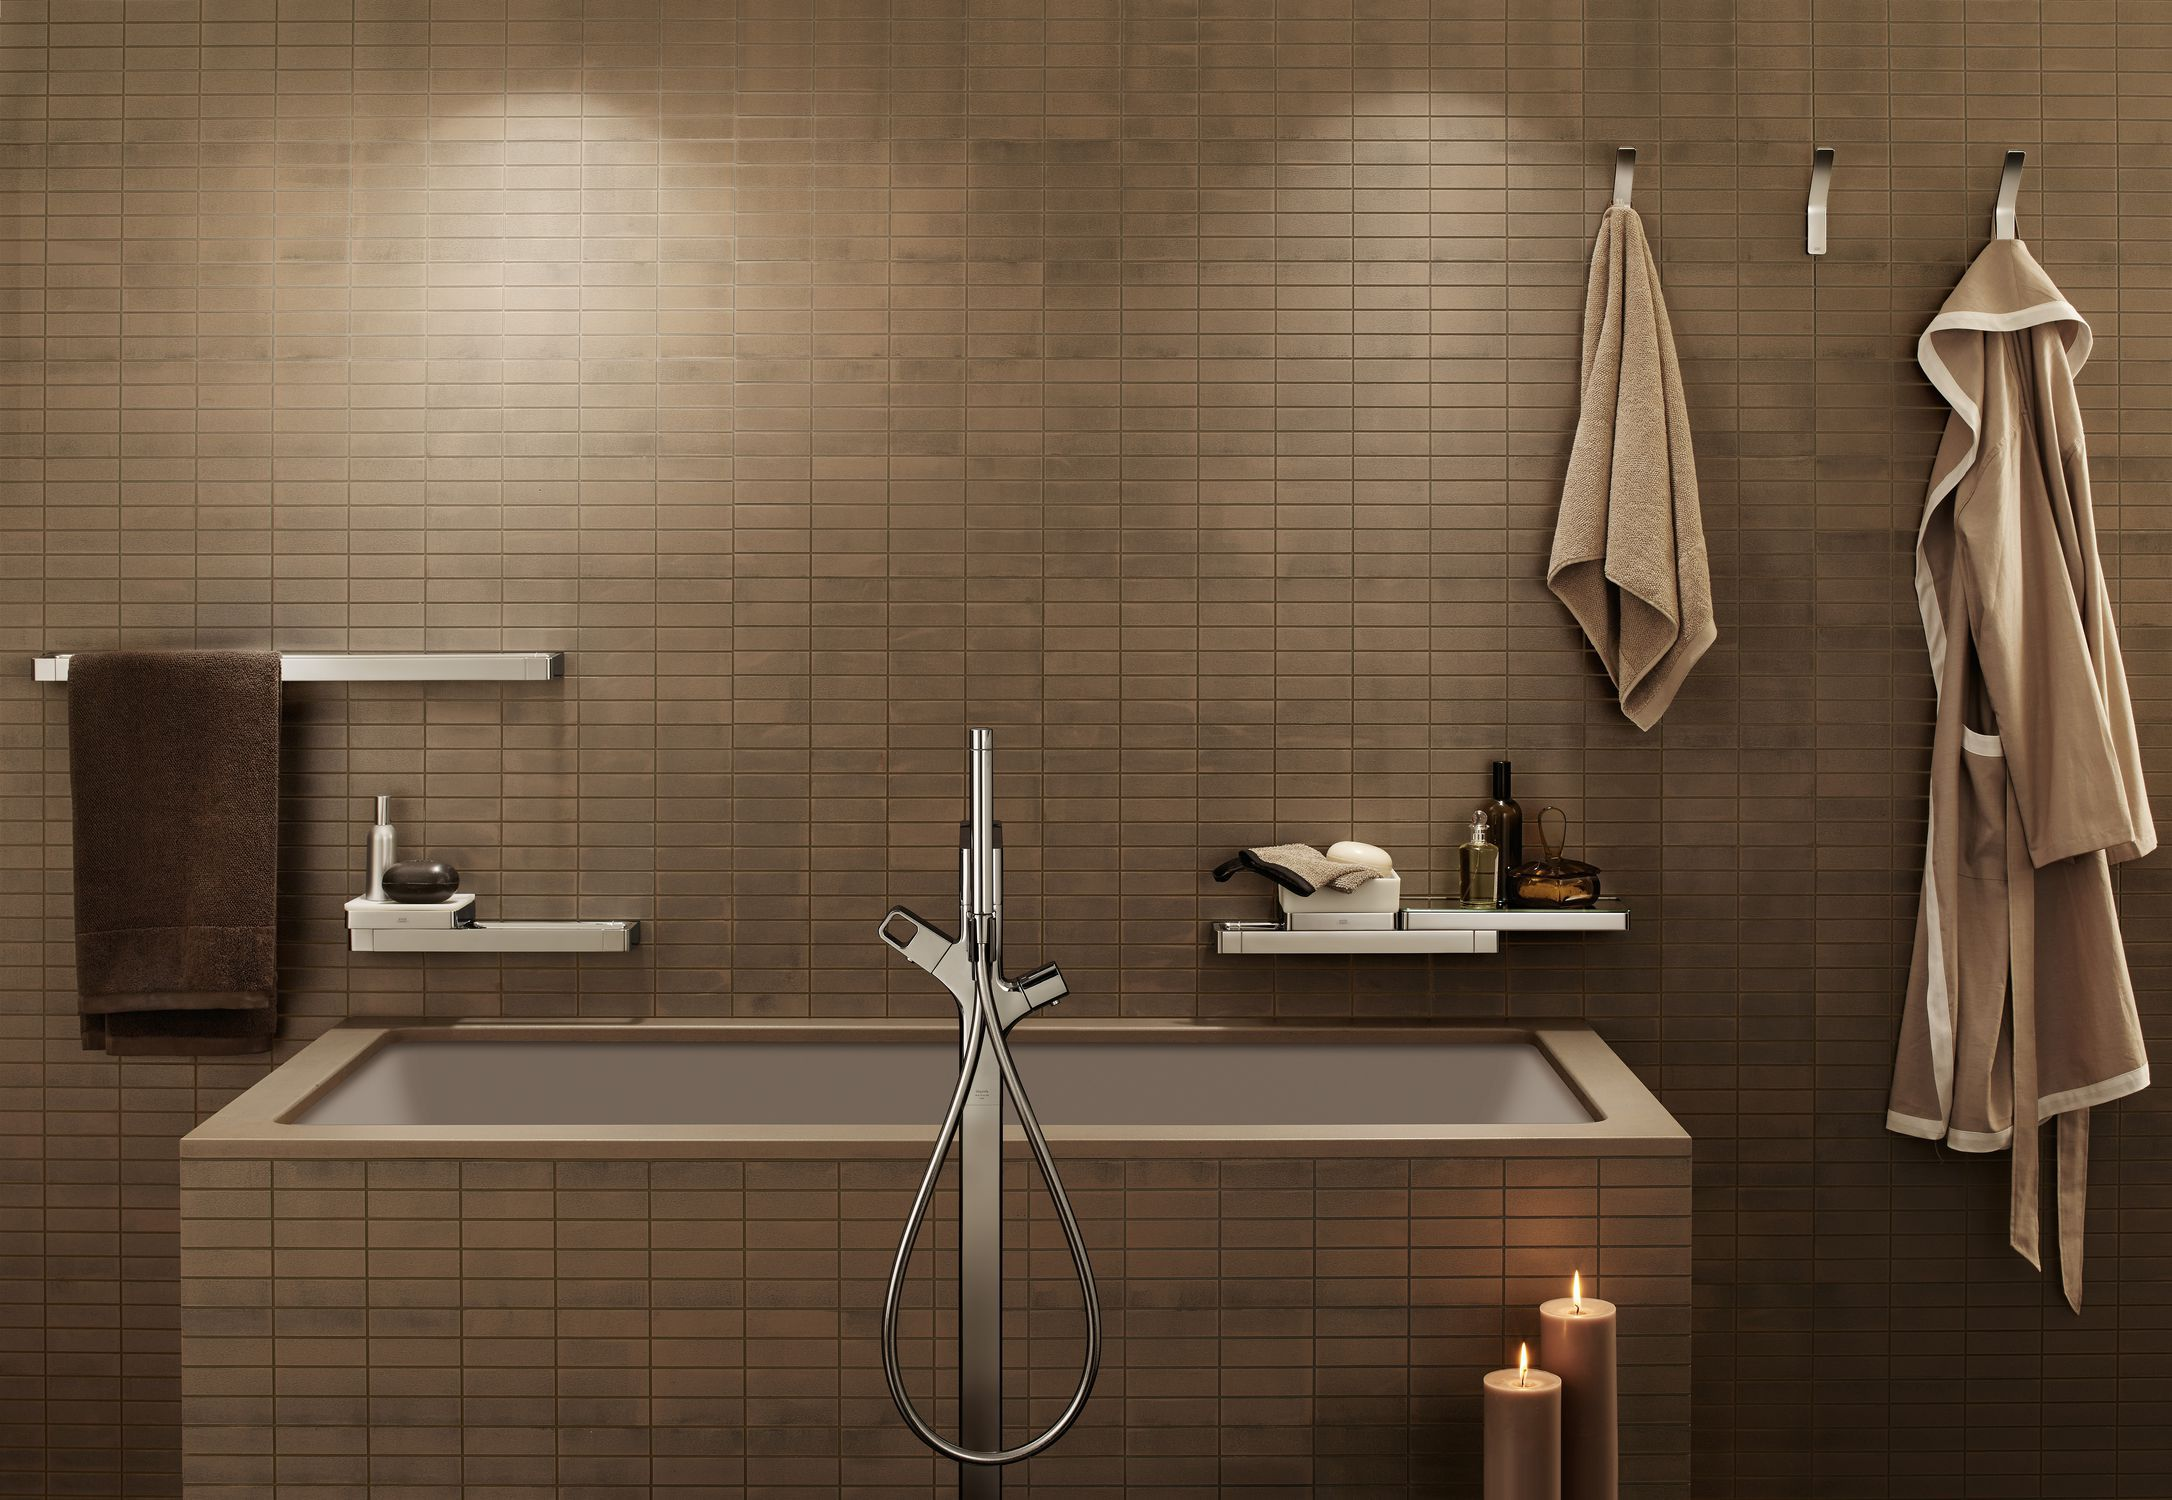 Bathtub mixer tap / floor-mounted / chromed metal / thermostatic ...